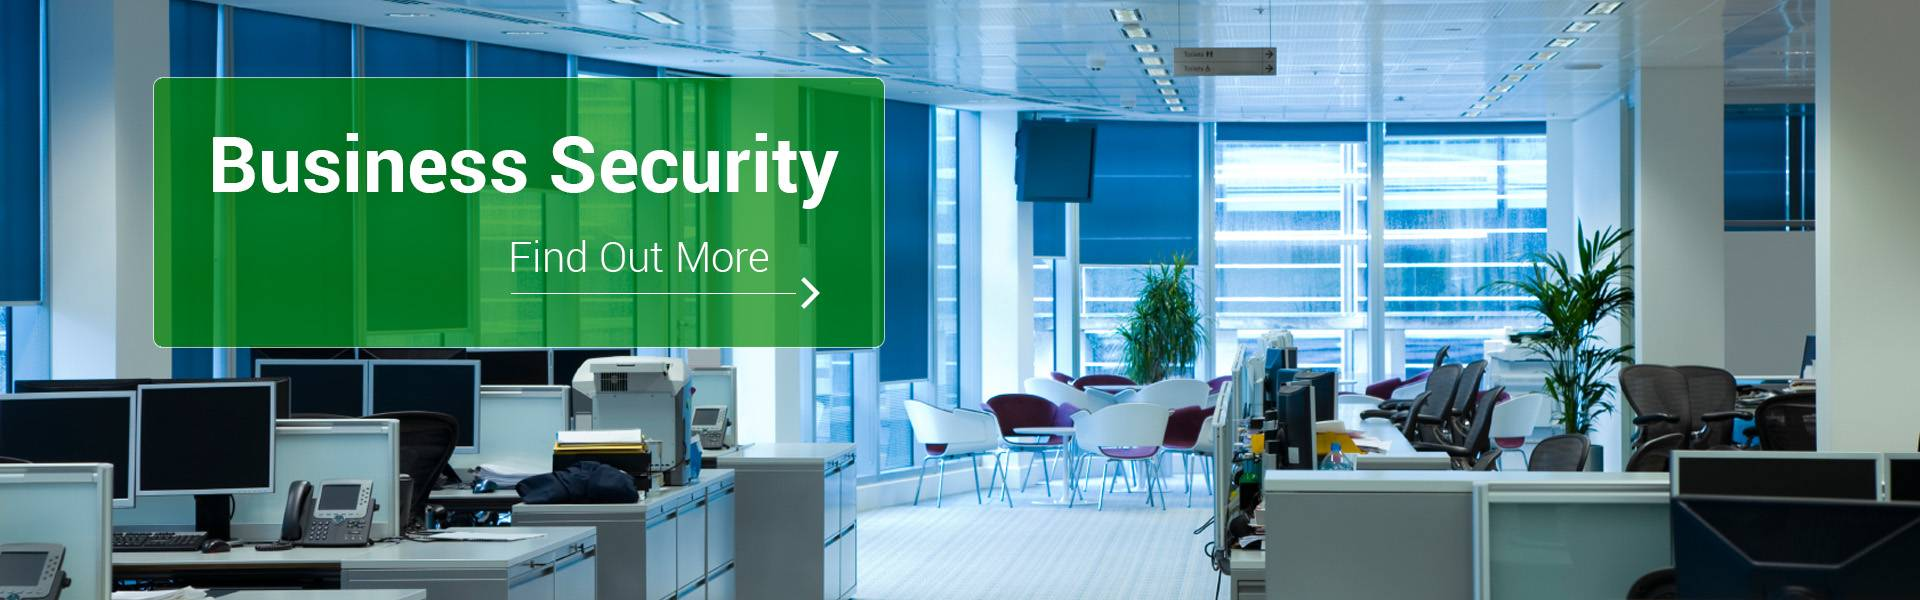 Business Security, modern office